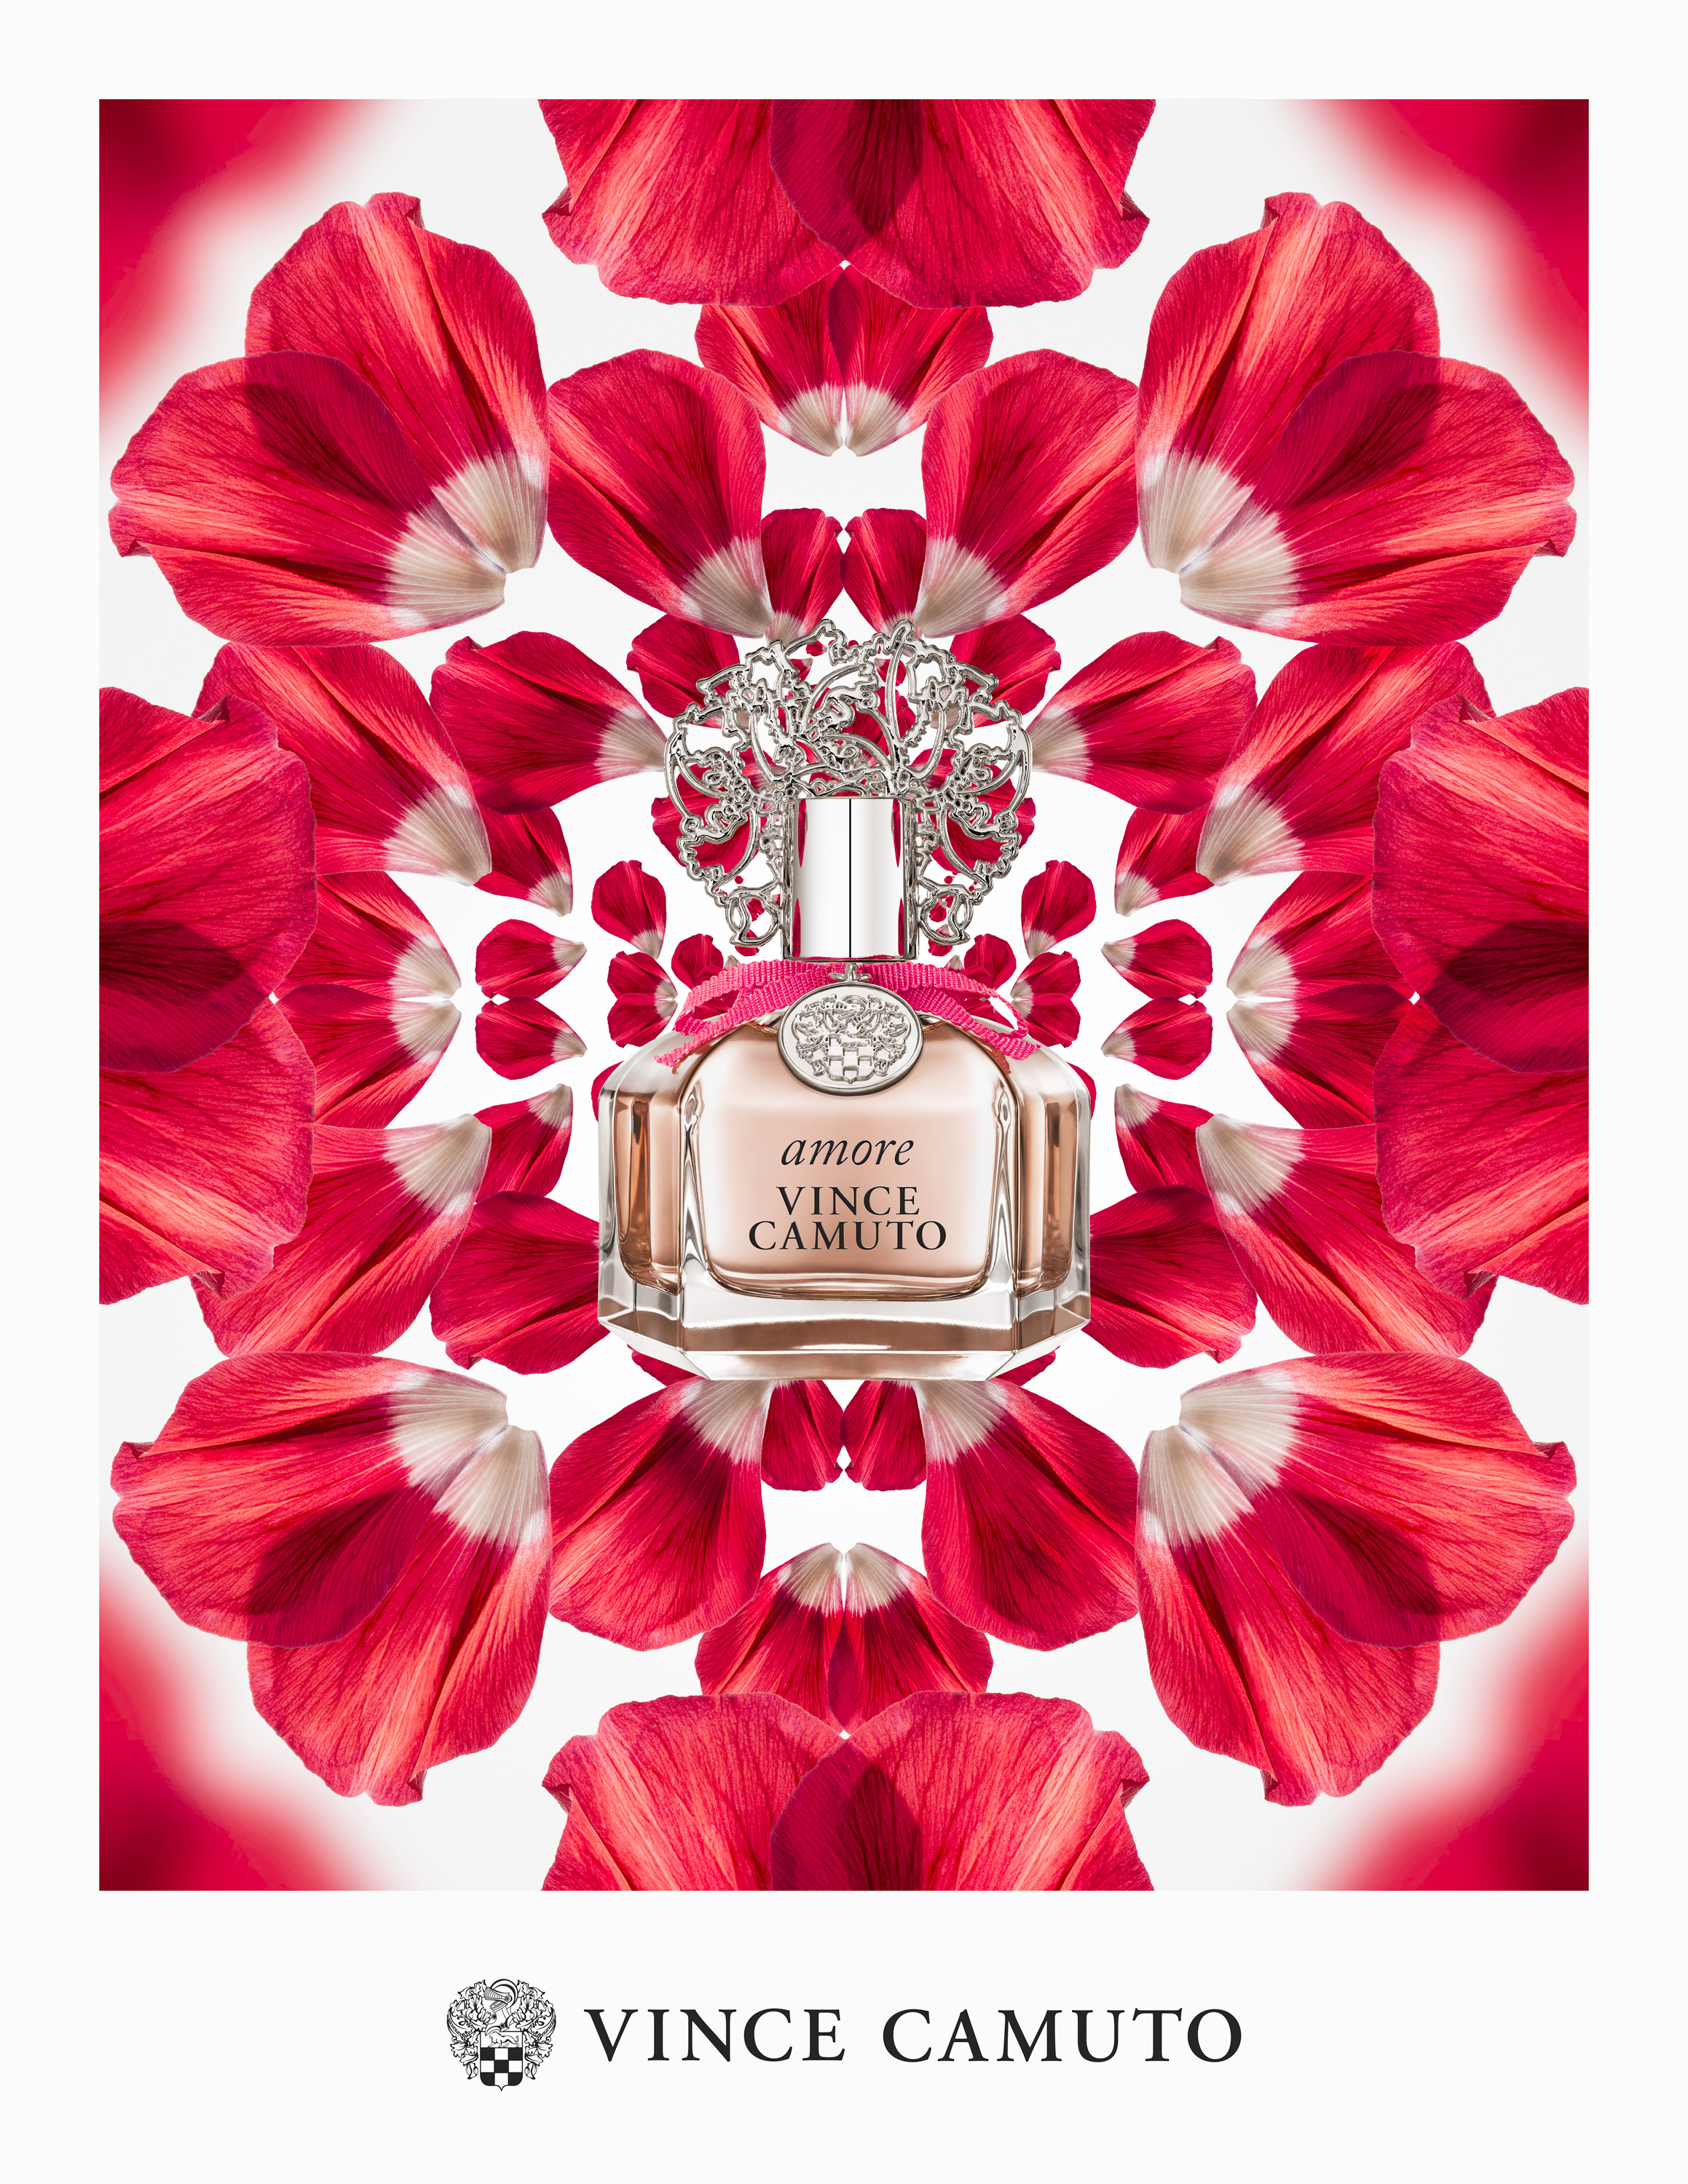 Vince-Camuto-Amore-Fragrance-Ad-by-Timothy-Hogan_MF.jpg